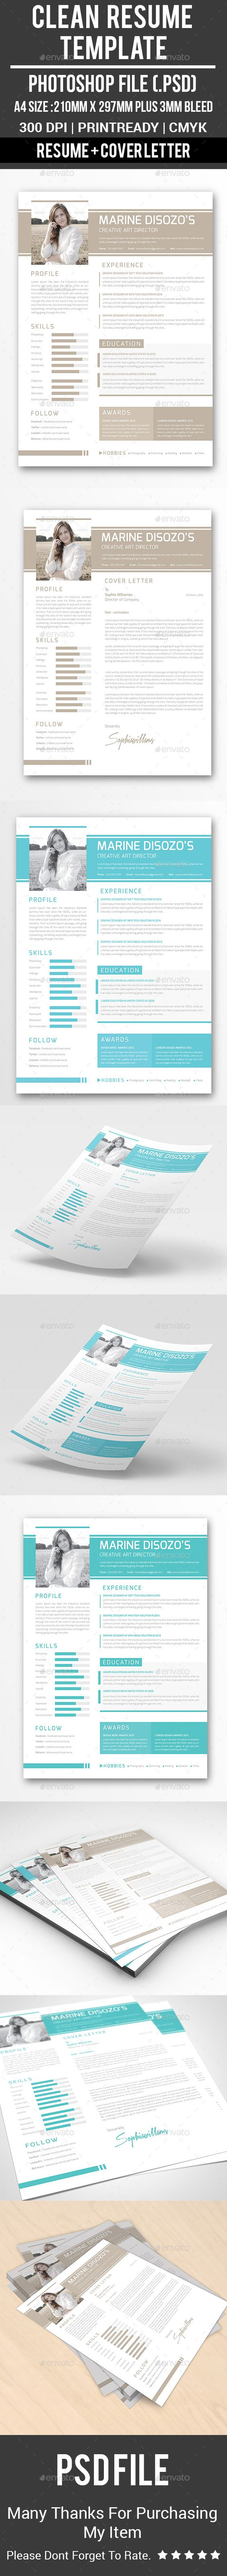 clean resume template cleanses resume and resume templates clean resume template psd